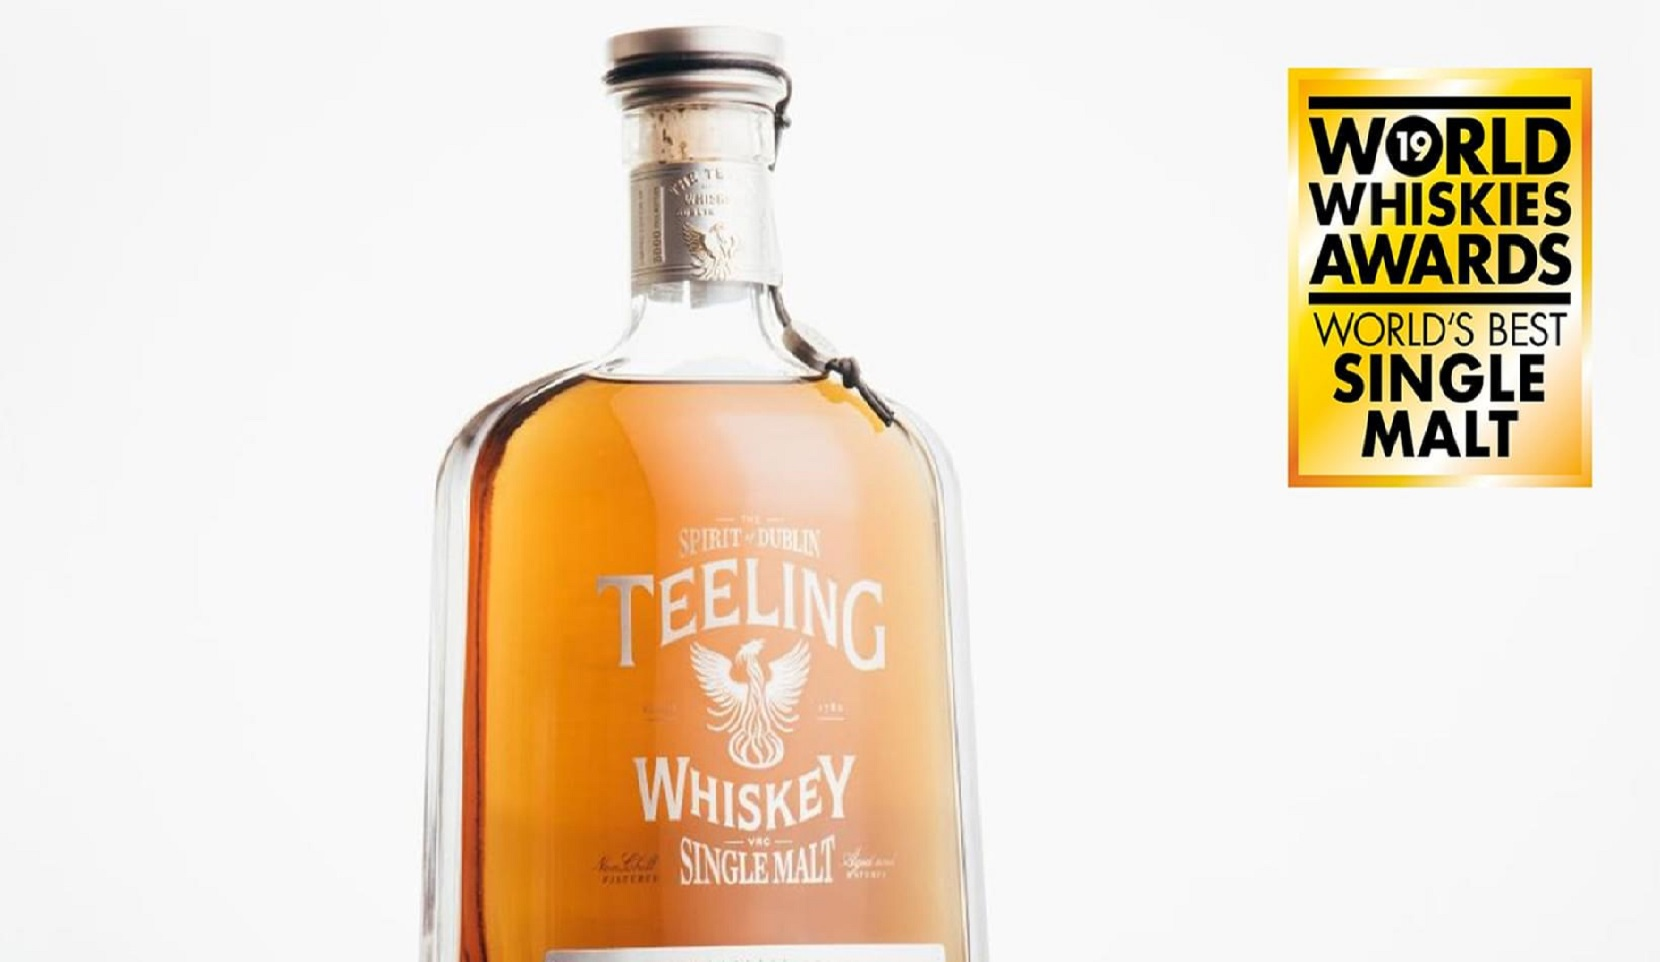 Teeling Whiskey 24 Year Old is the World's Best Single Malt